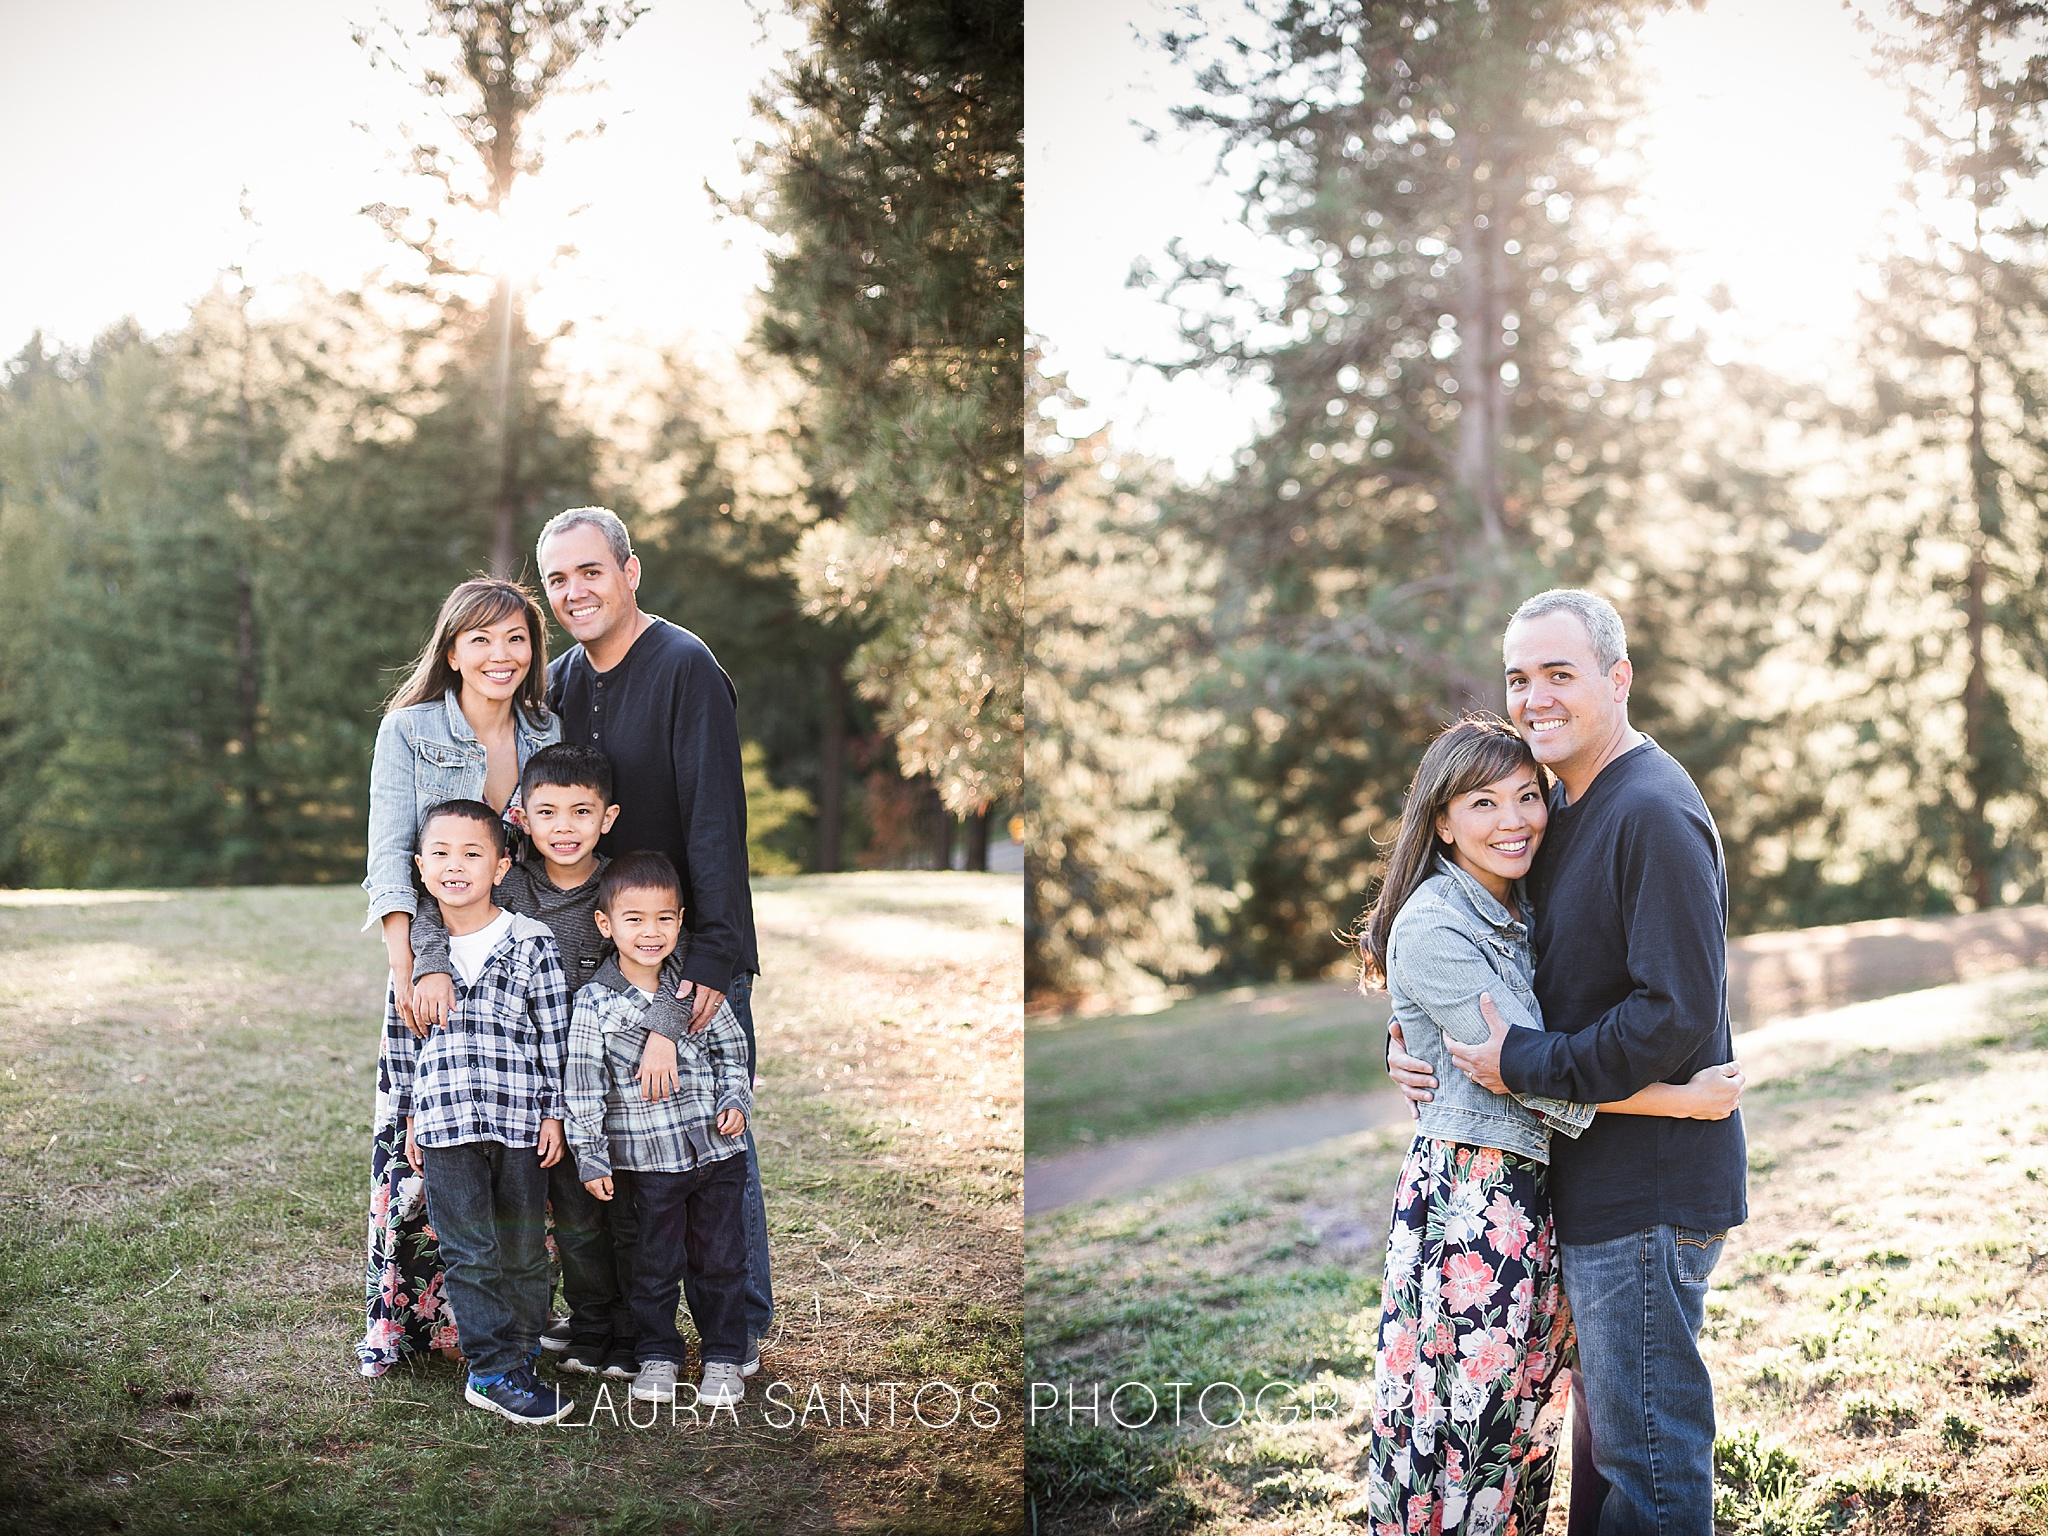 Laura Santos Photography Portland Oregon Family Photographer_0752.jpg